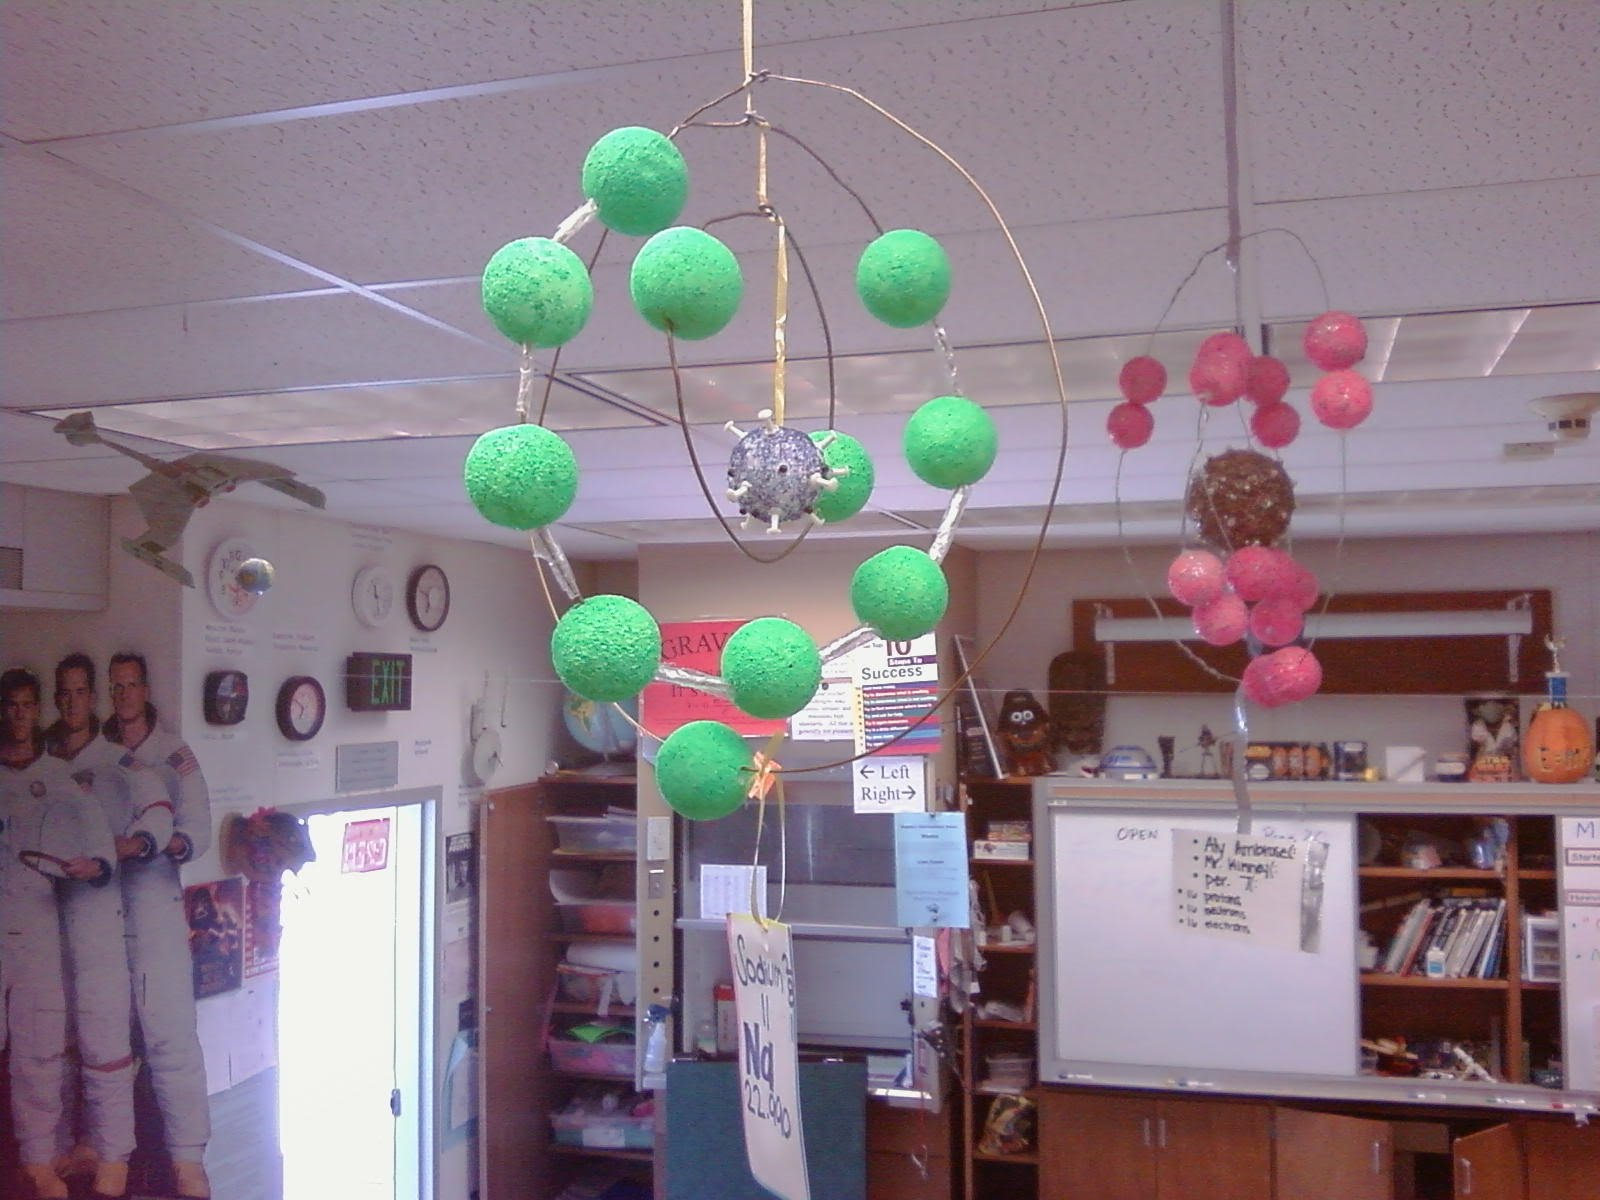 chemistry project ideas the eighth grade science teacher week day  the eighth grade science teacher week day pictures of the week 36 day 4 pictures of chemistry project and experiment ideas